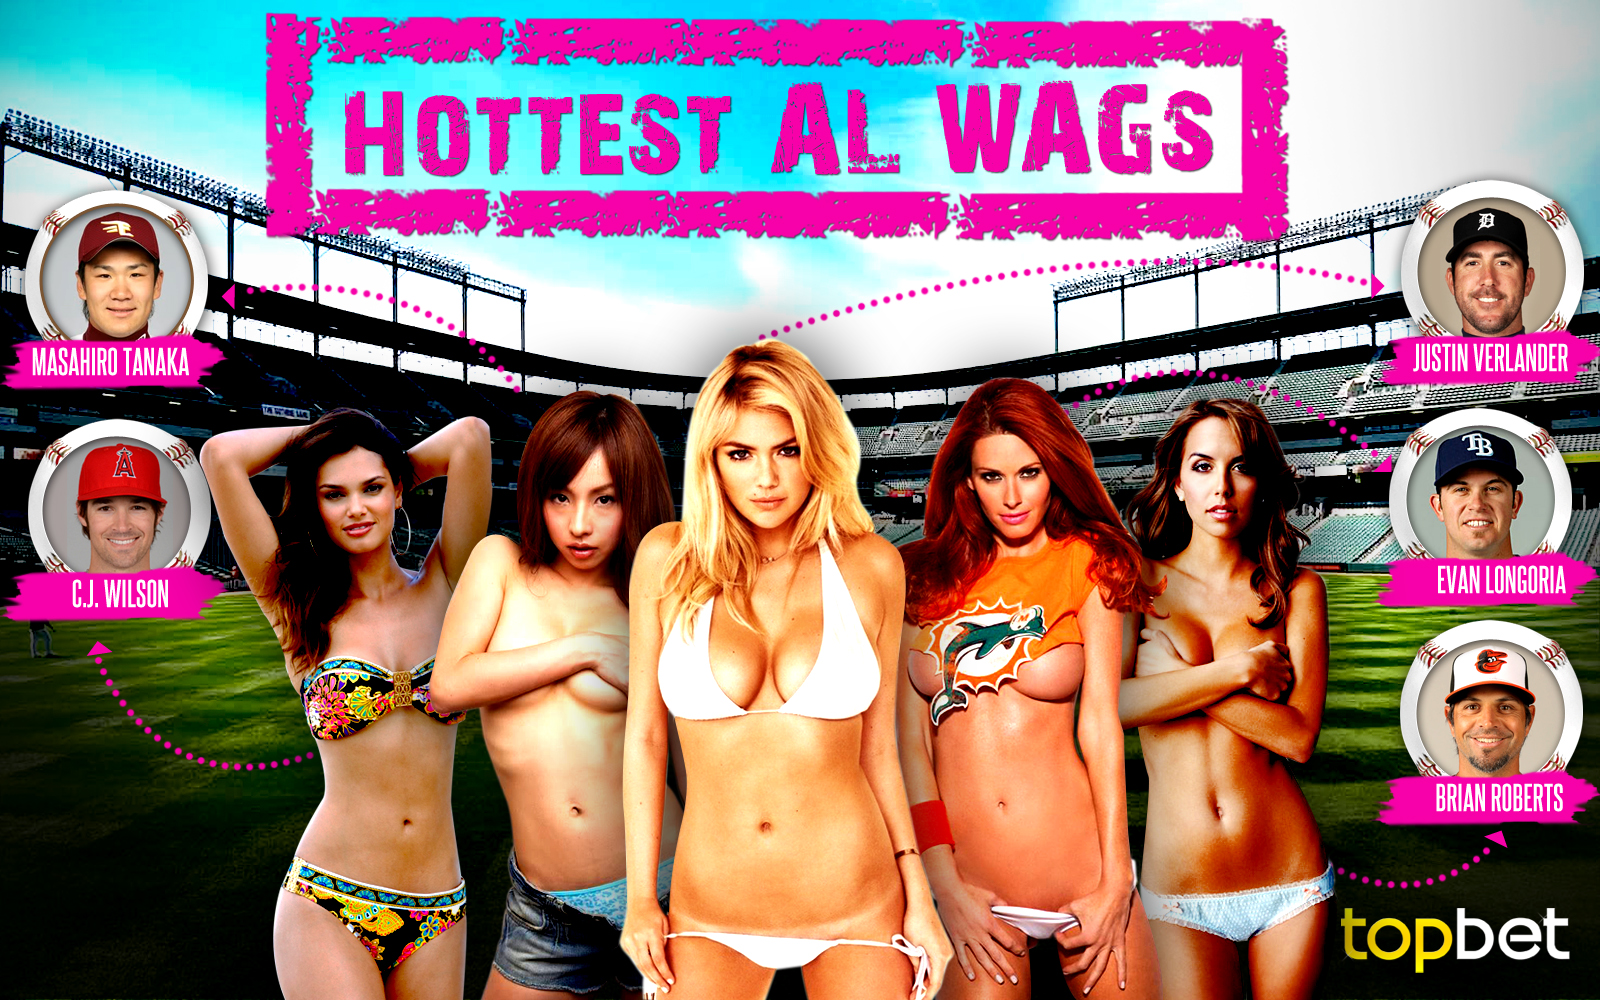 The Hottest Wives and Girlfriends of American League players, courtesy of Top Bet sportsbook.